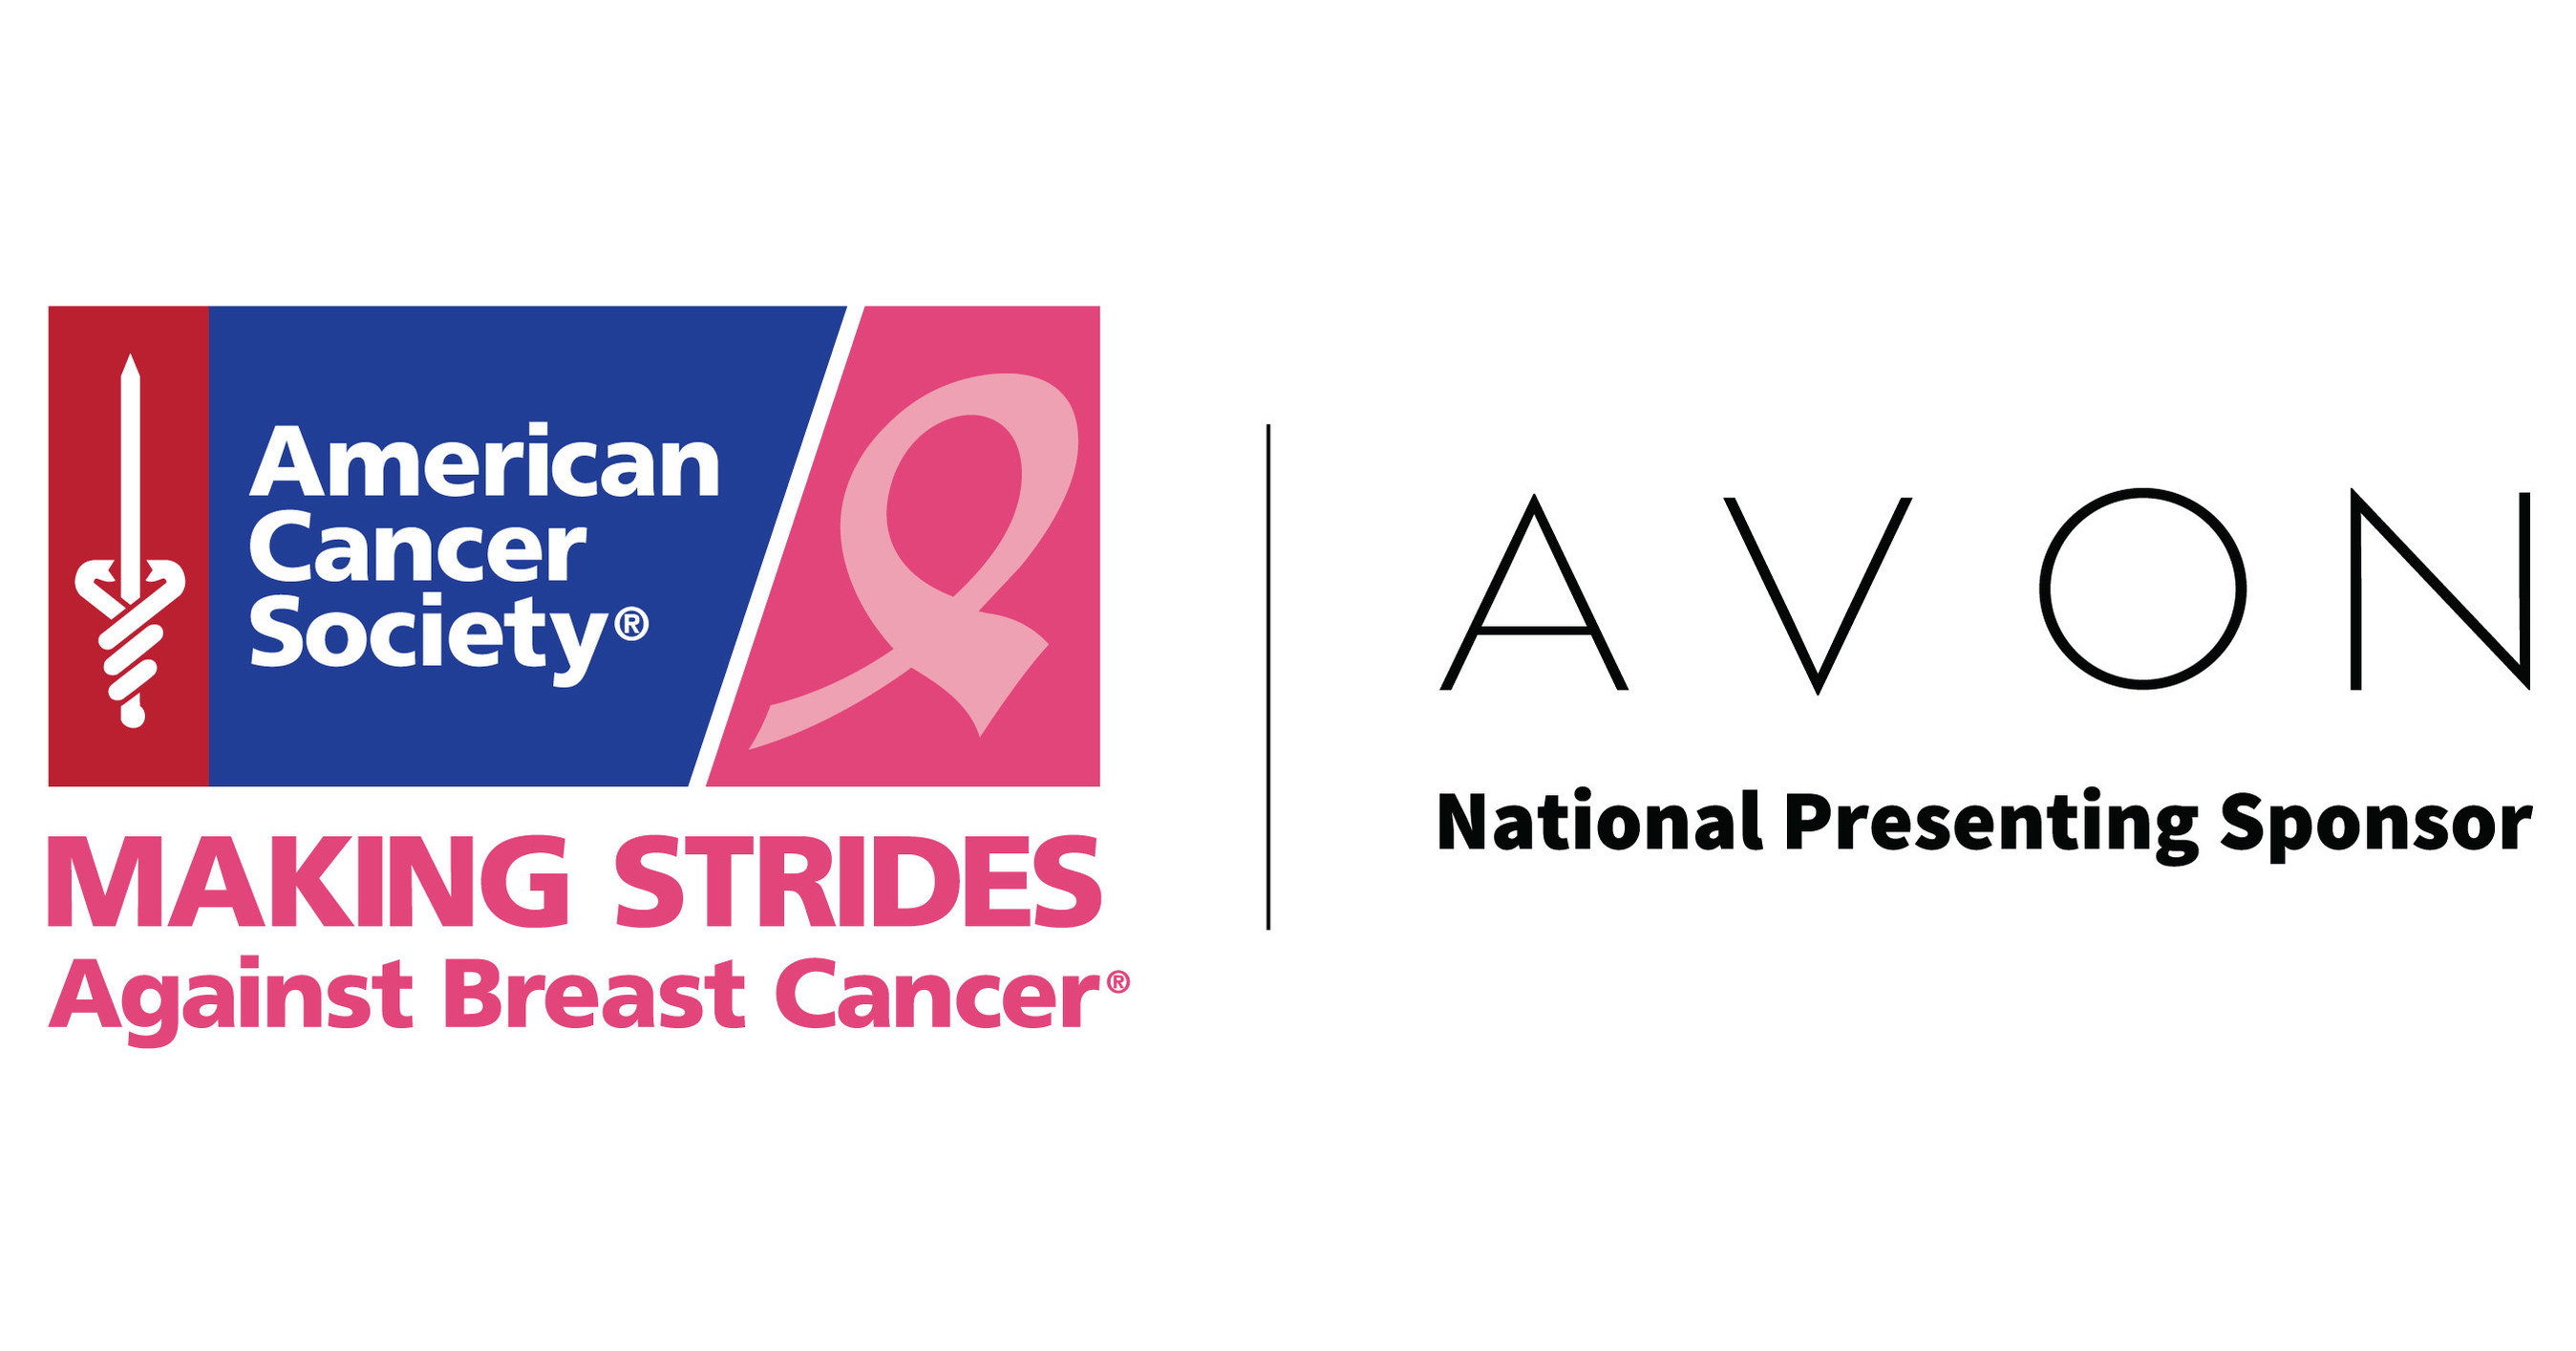 American Cancer Society Welcomes Avon As National